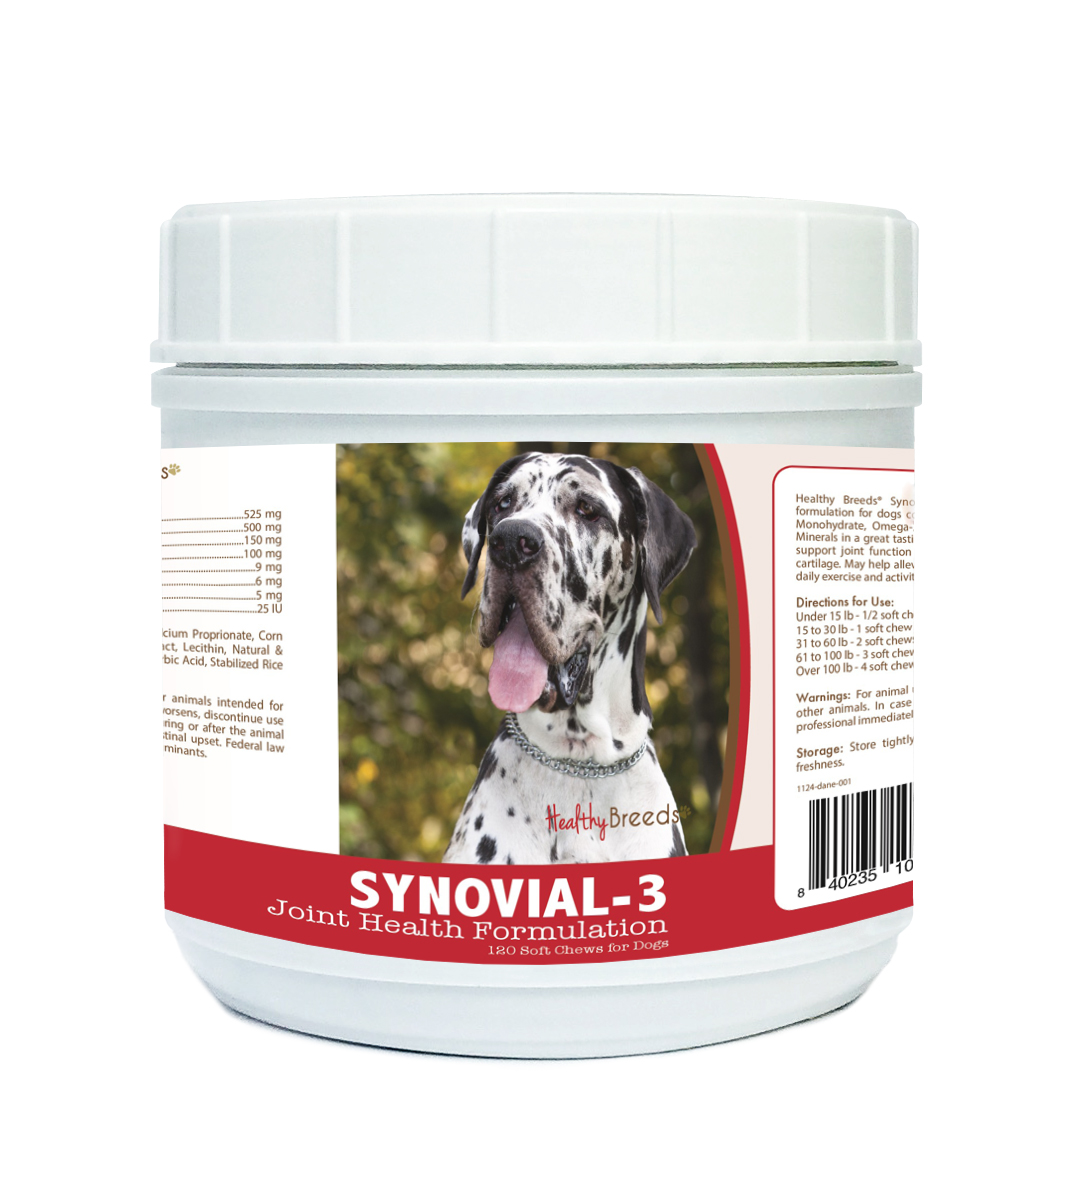 Healthy Breeds Great Dane Synovial - 3 Joint Health Formulation 120